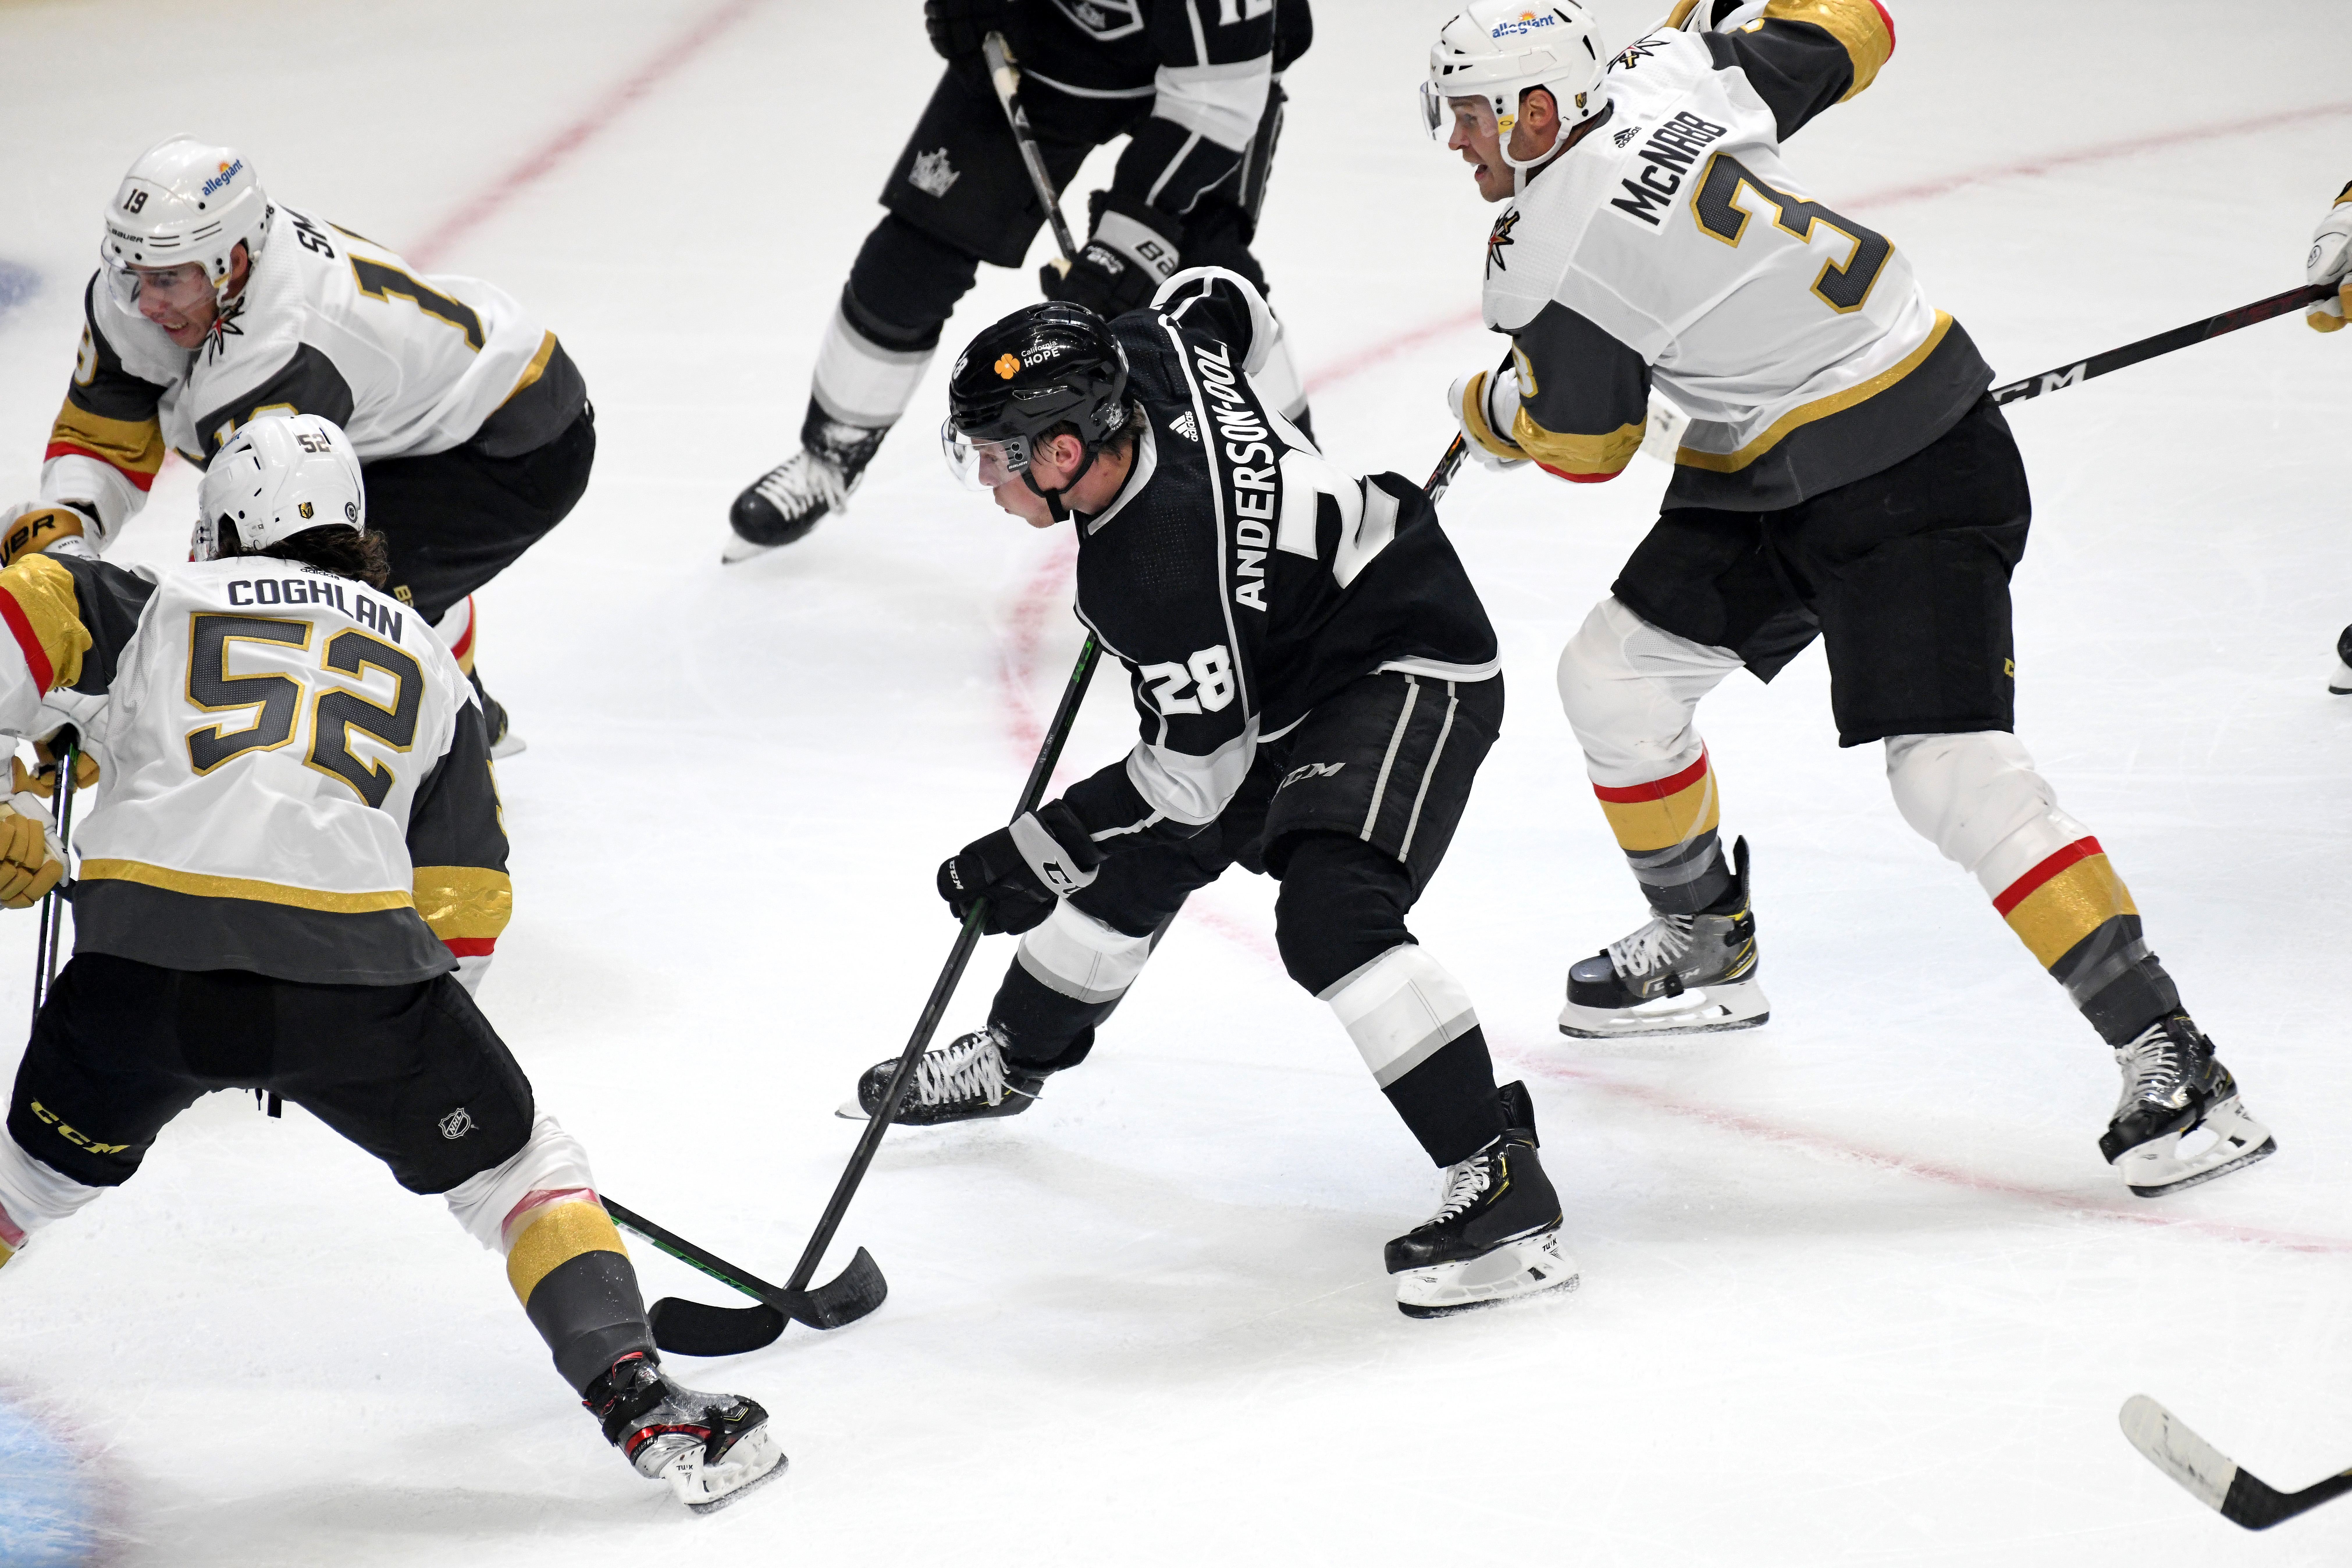 Los Angeles Kings Center Jaret Anderson-Dolan (28) takes a shot on net despite heavy defensive pressure during a National Hockey League game March 19, 2021, at the Staples Center in Los Angeles, CA.